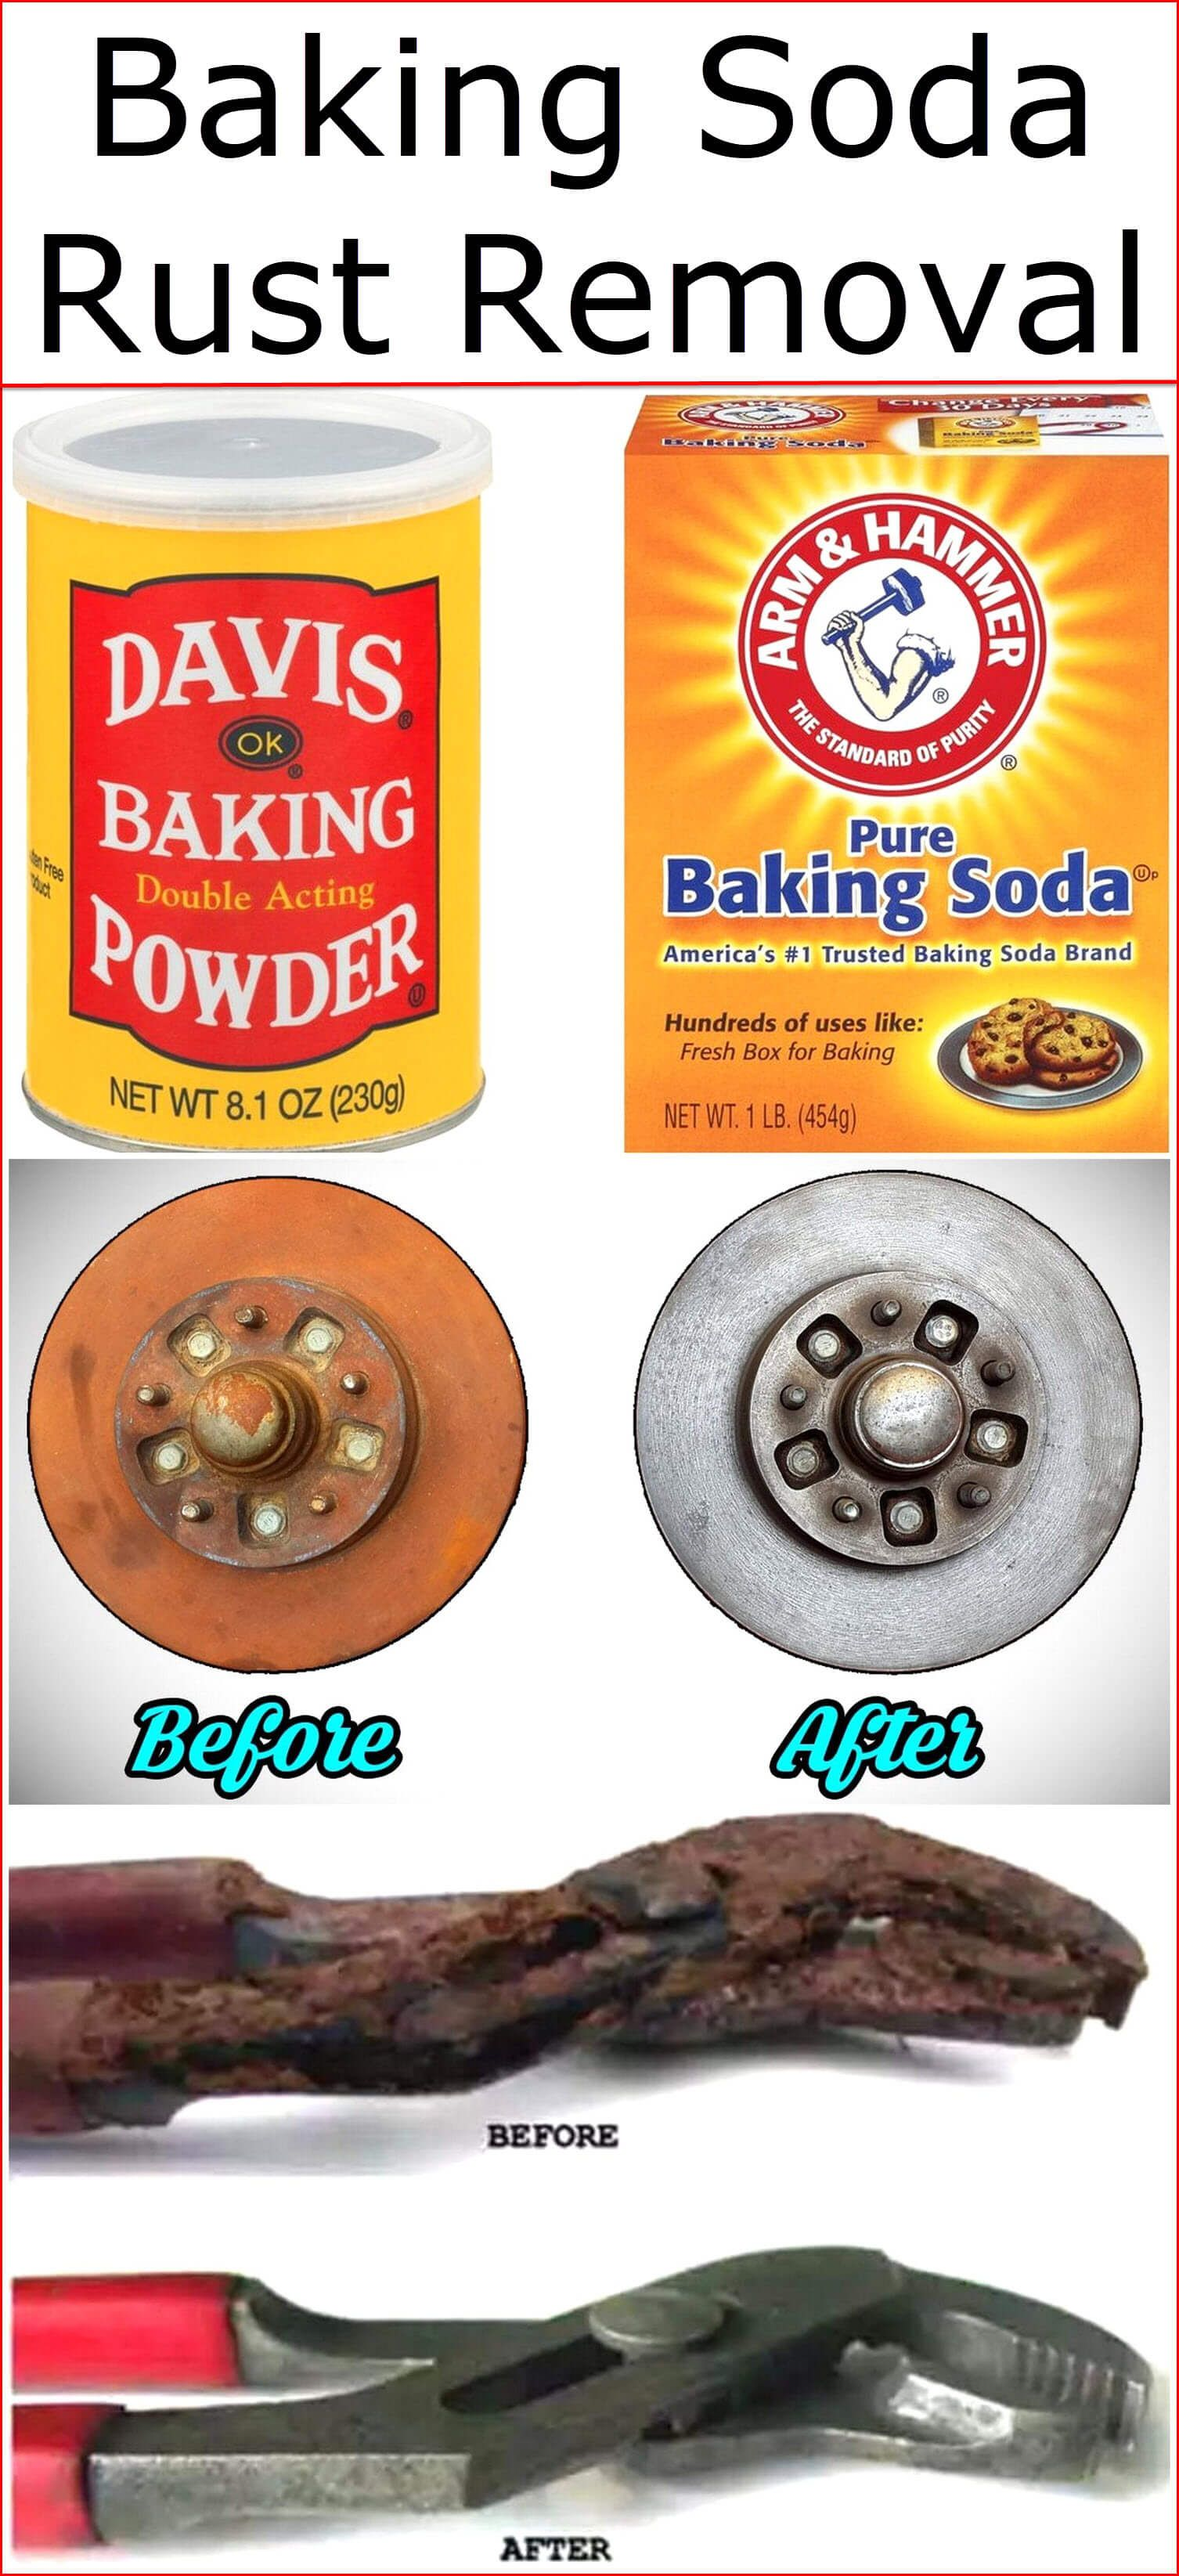 Baking Soda Rust Removal How To Remove Rust Baking Soda How To Clean Rust